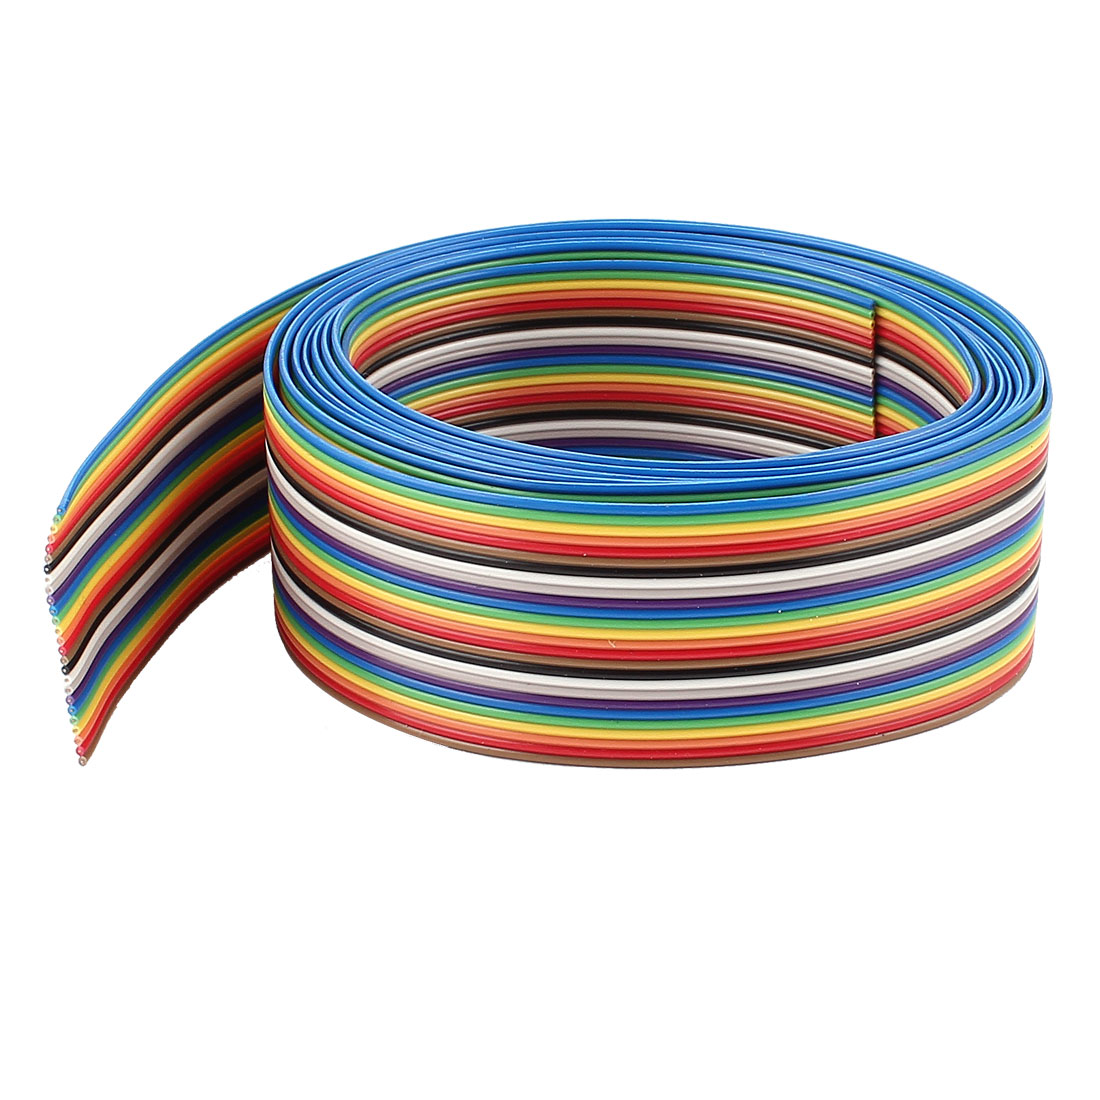 2meter 6.6Ft Long 1.27mm Pitch 26-Pin Colorful Connecting Testing Flat Ribbon Wire Cable